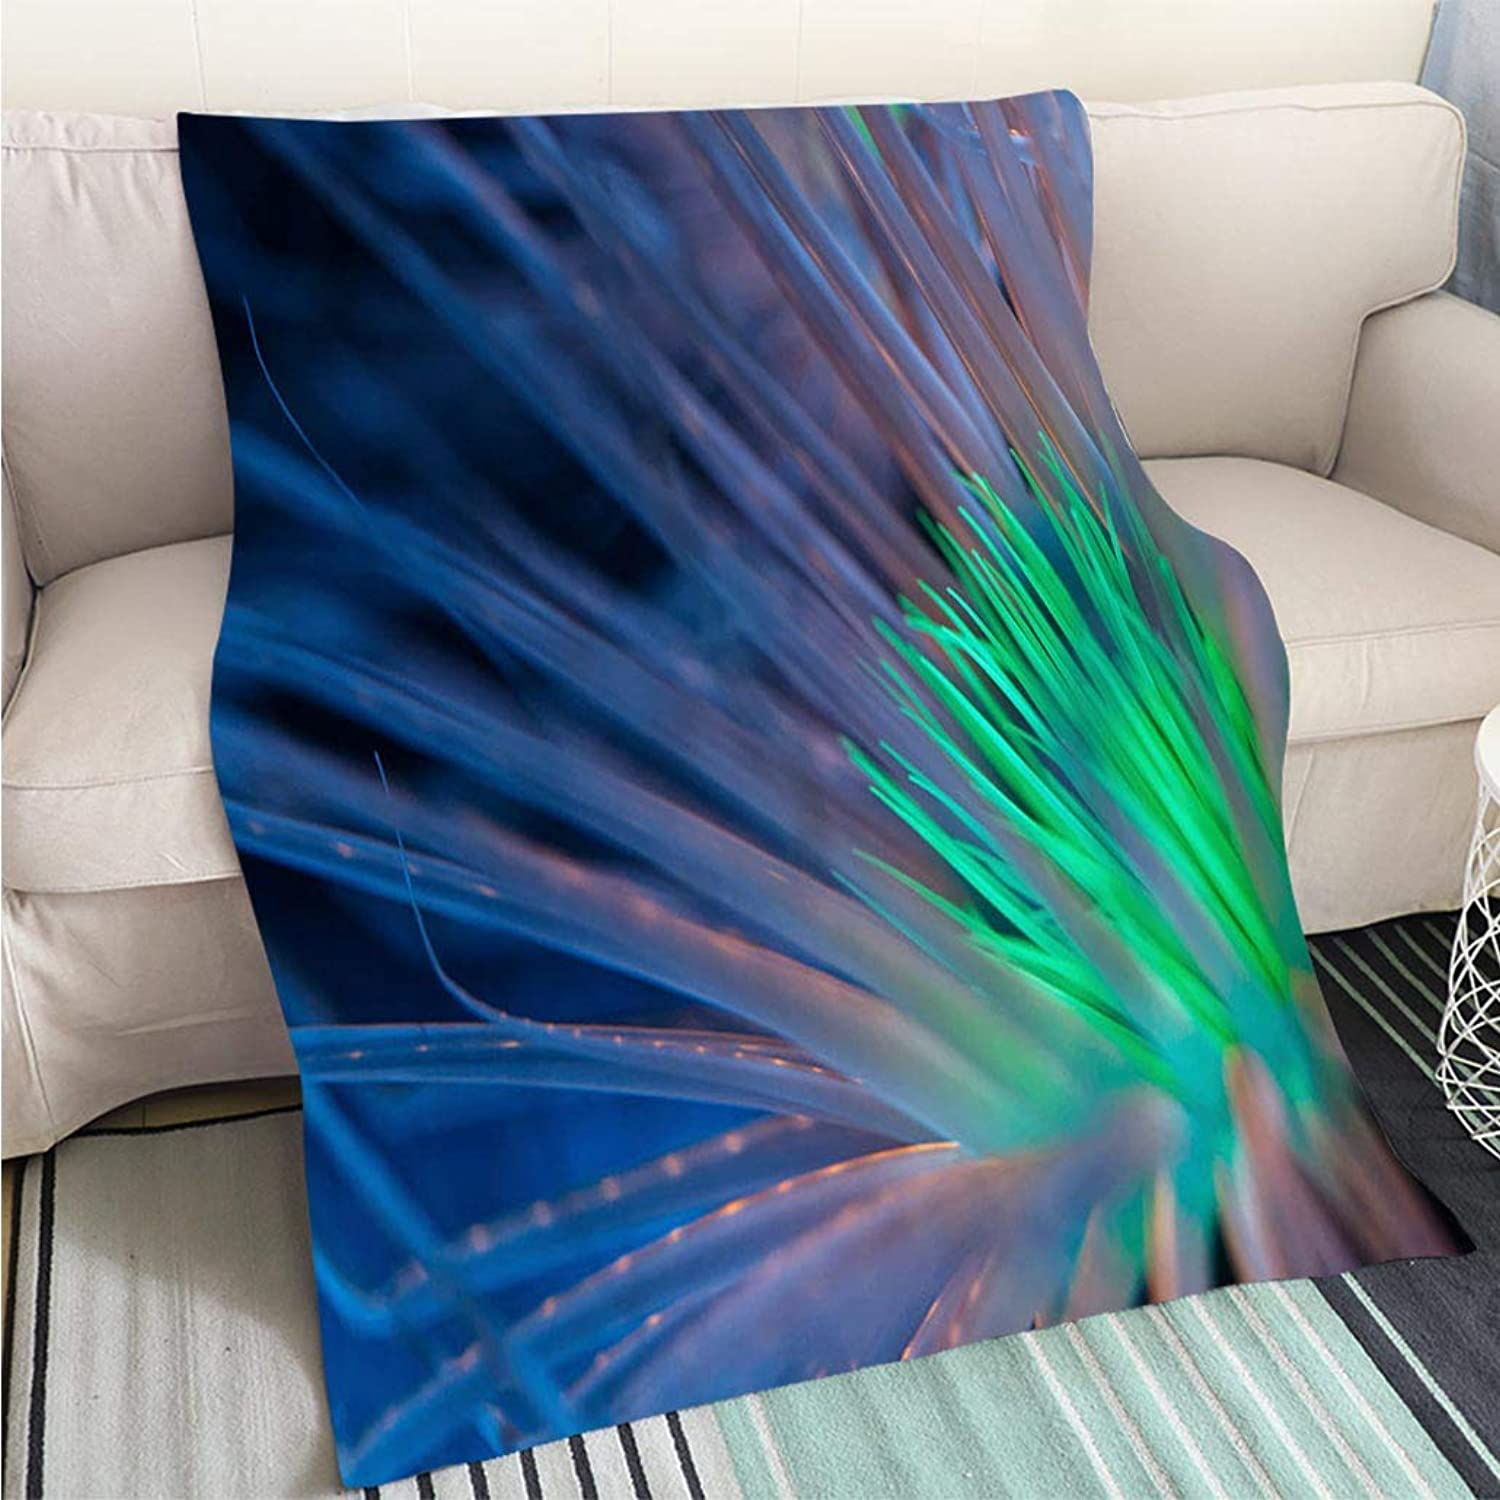 Home Digital Printing Thicken Blanket Bioluminescent Anemone Perfect for Couch Sofa or Bed Cool Quilt